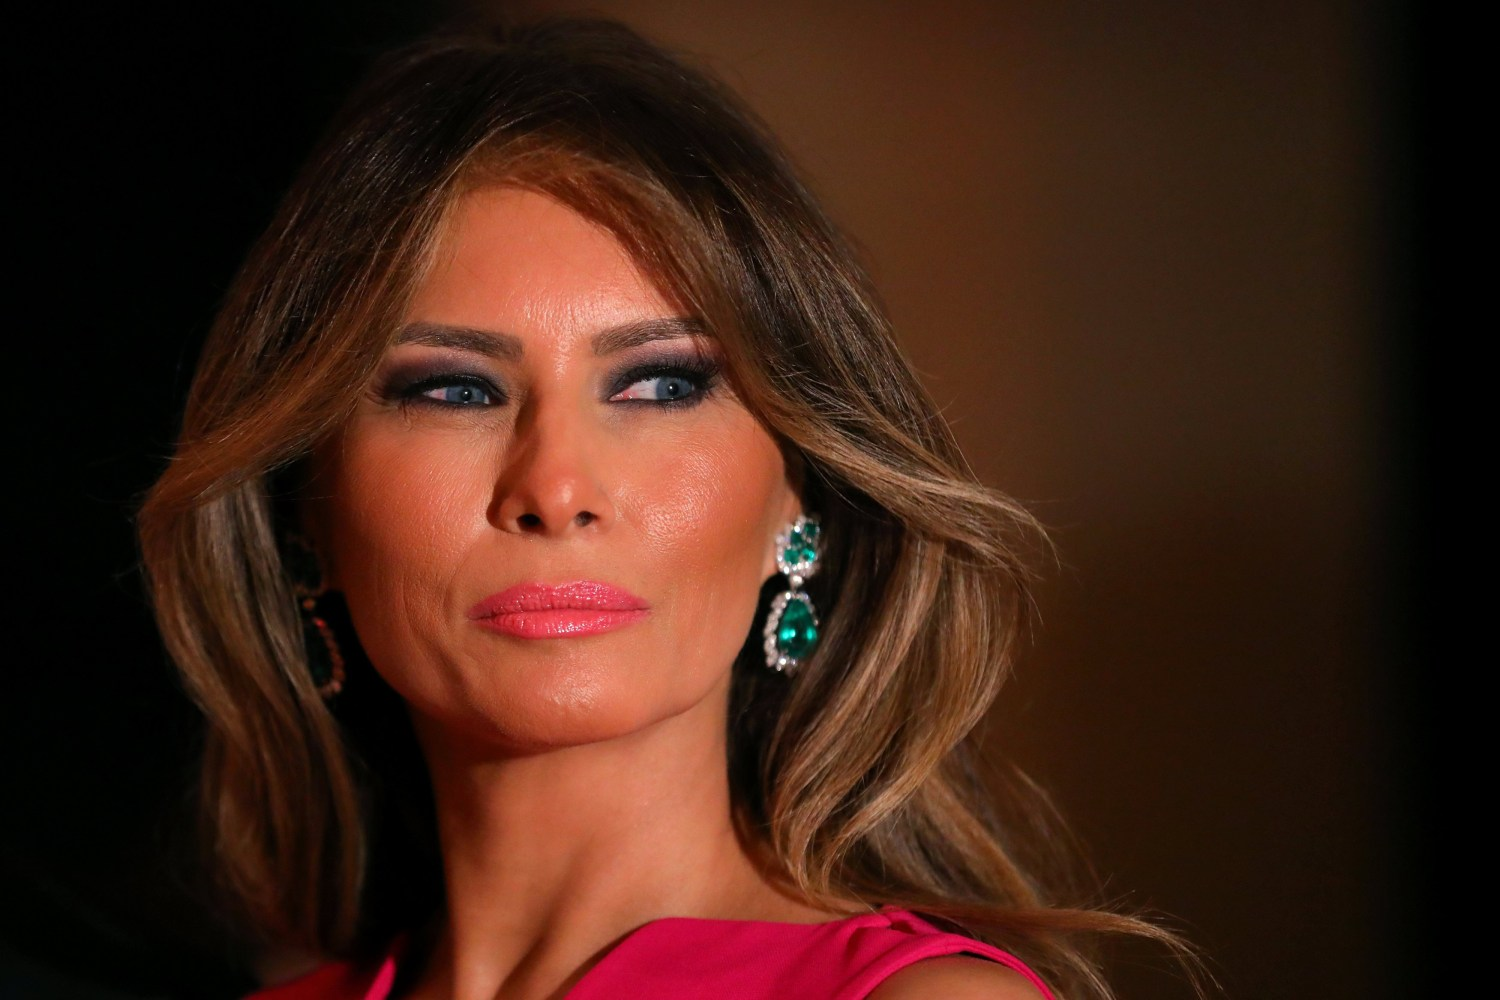 Melania Trump Missing Out On Multimillion Dollar Deals